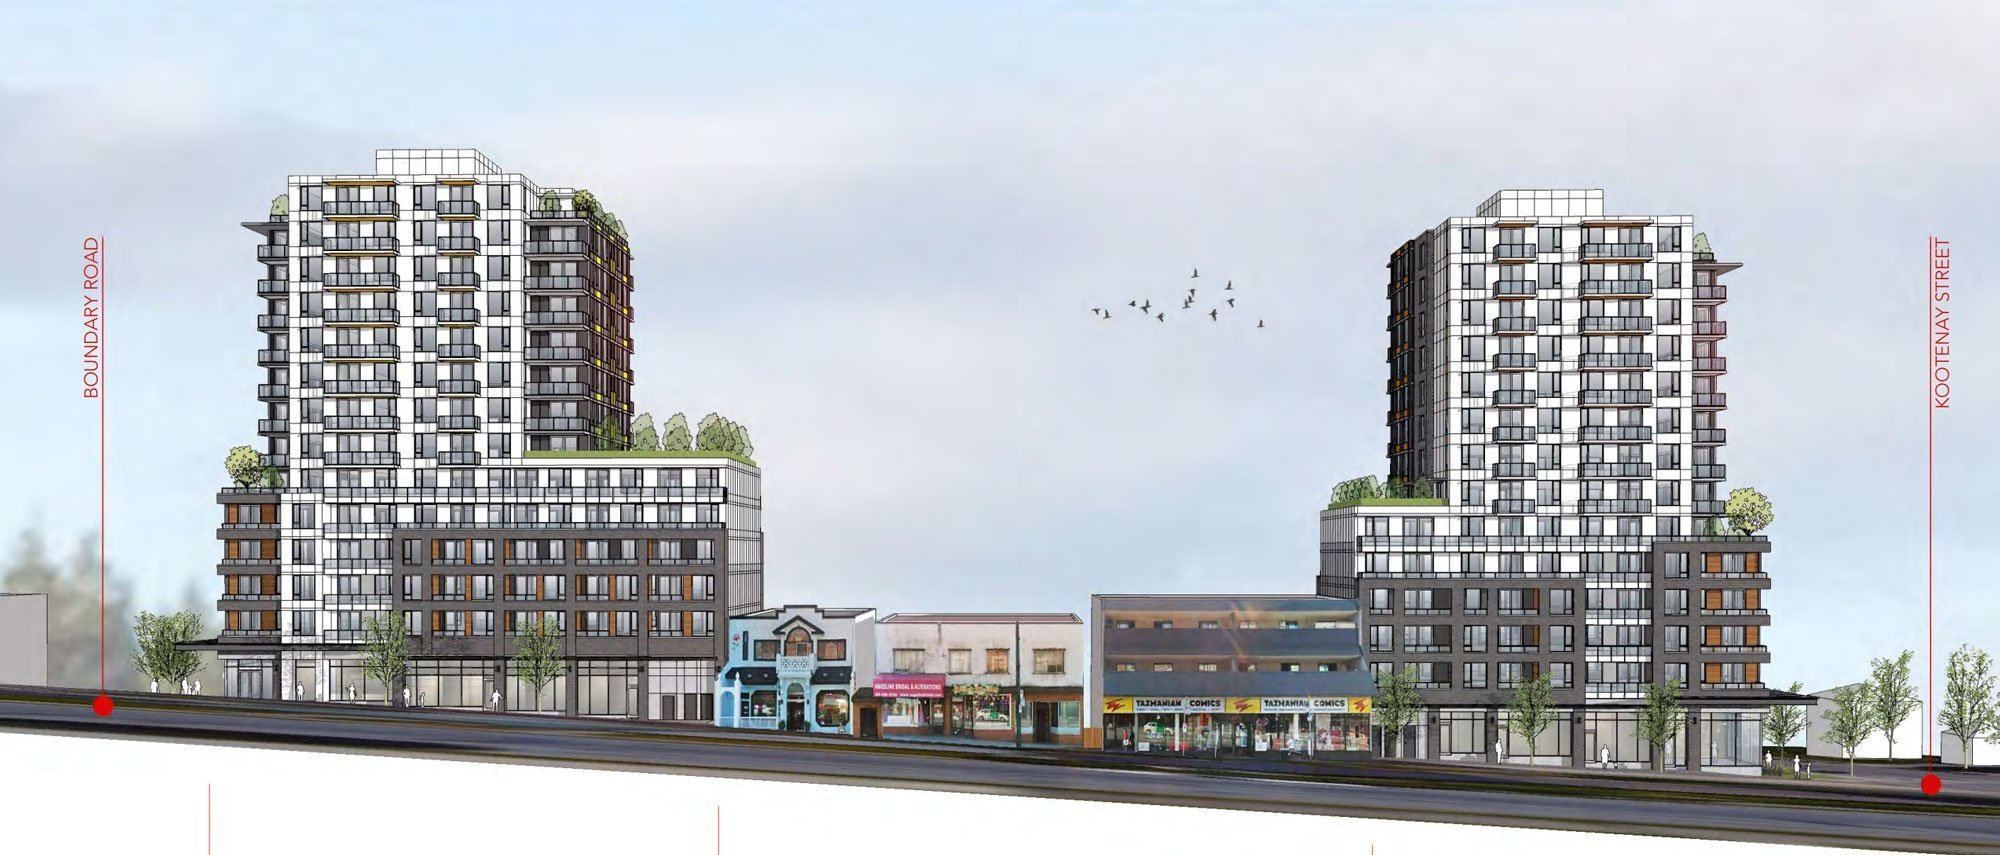 East Hastings and Boundary rental building rendering context